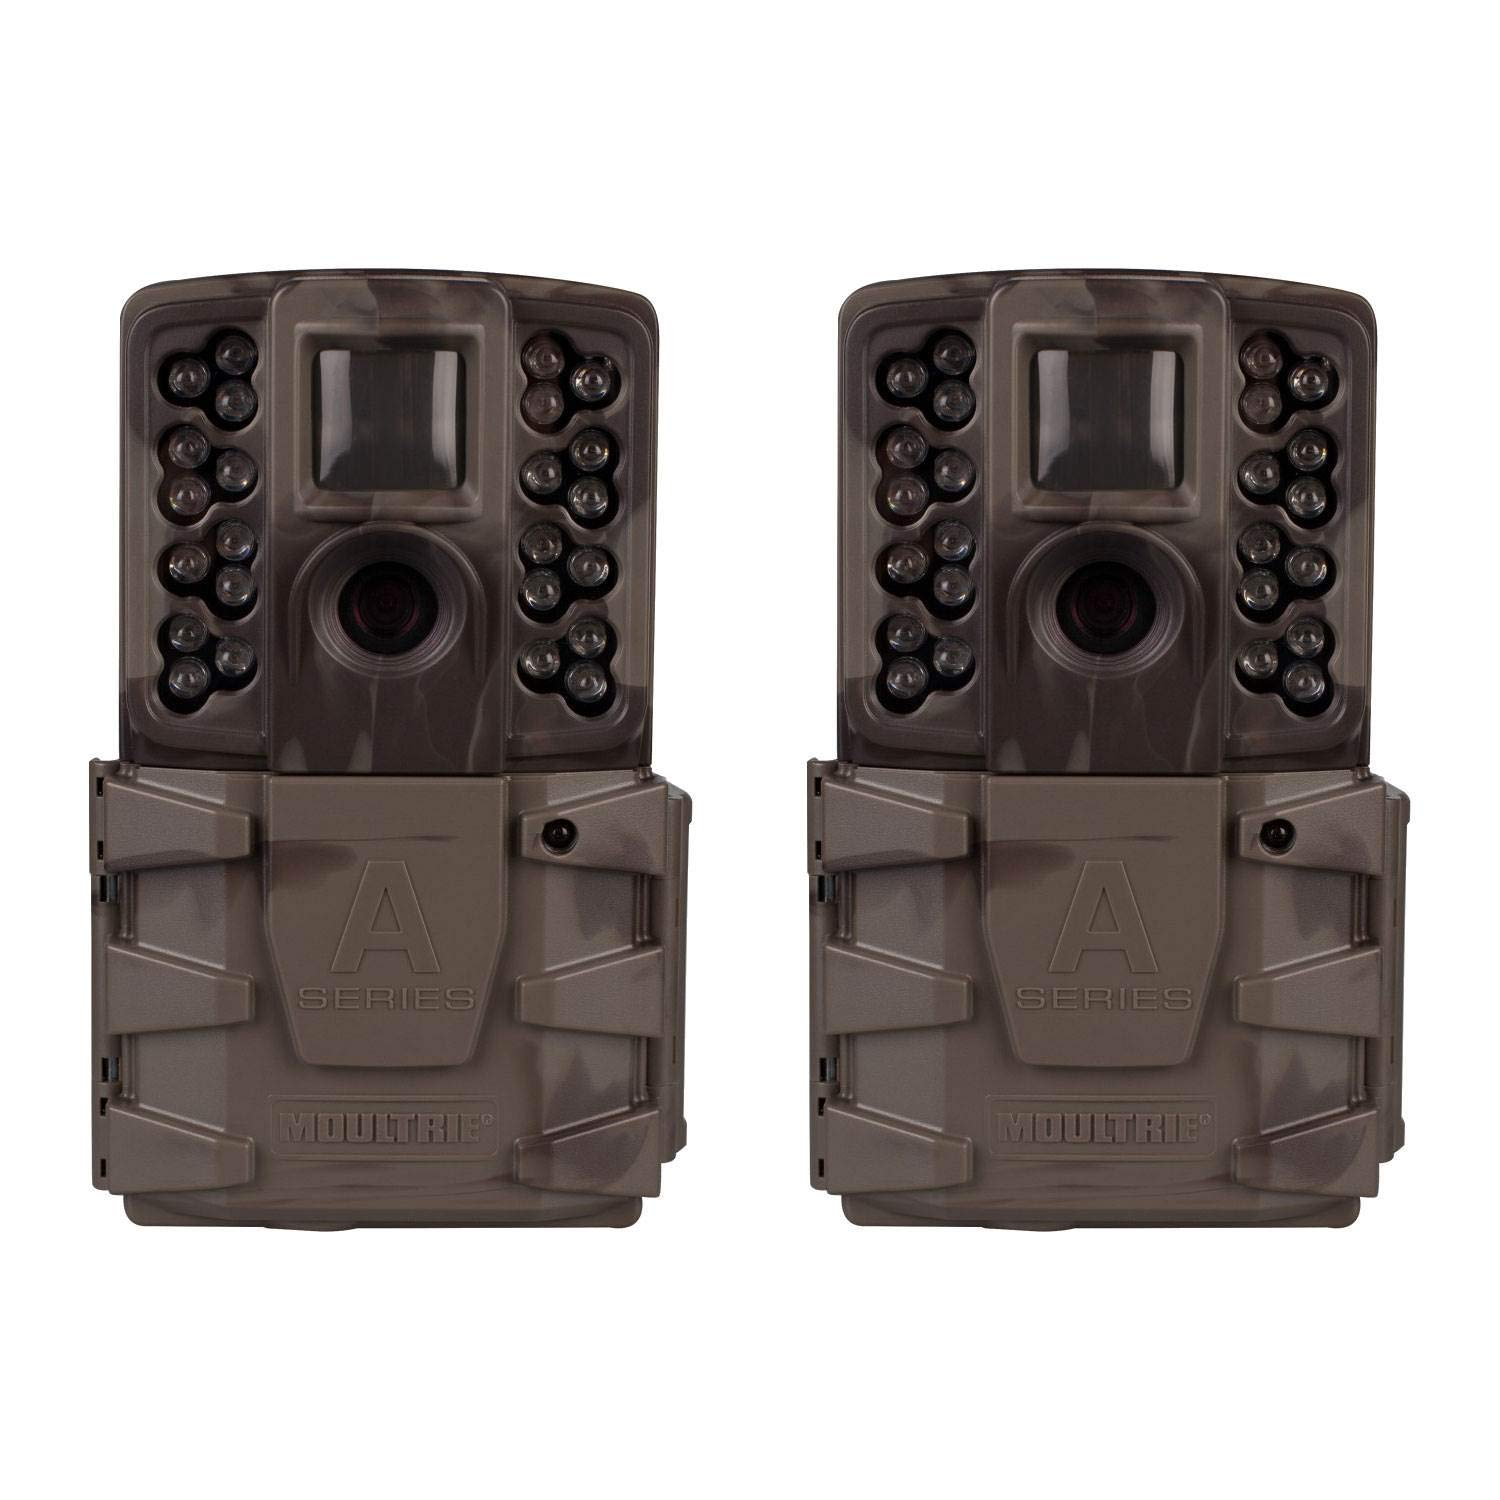 Moultrie A-40 Pro 14MP Low Glow Infrared Game Camera (2 Pack) by Moultrie